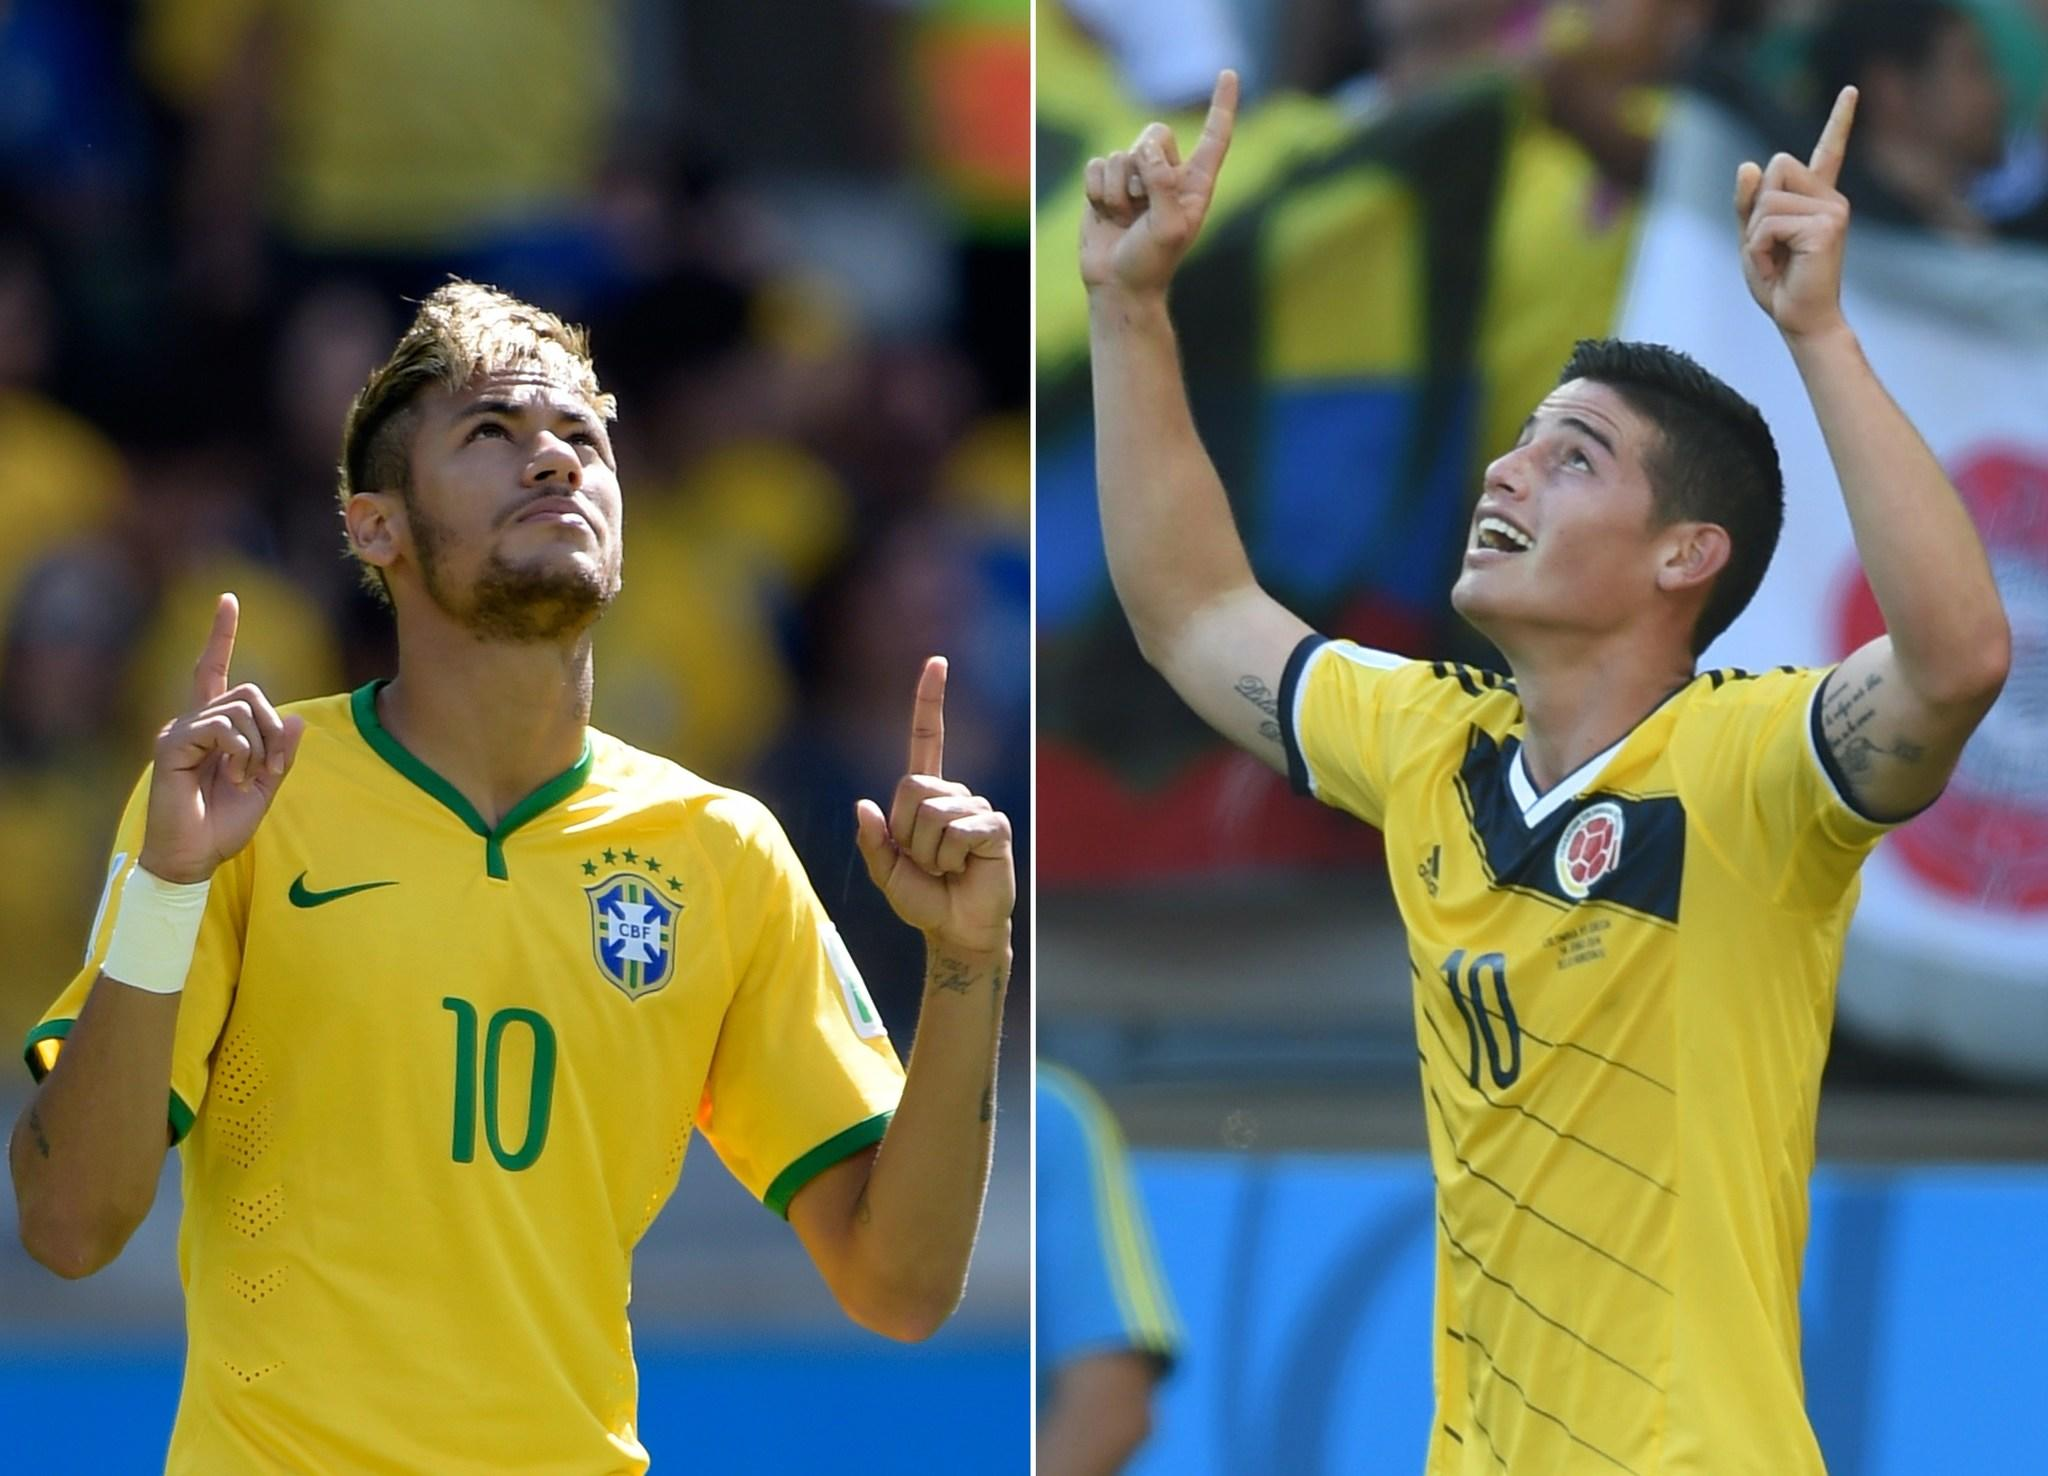 Brazil and Neymar, left, will face Colombia and James Rodriguez in a World Cup quarterfinal Friday.